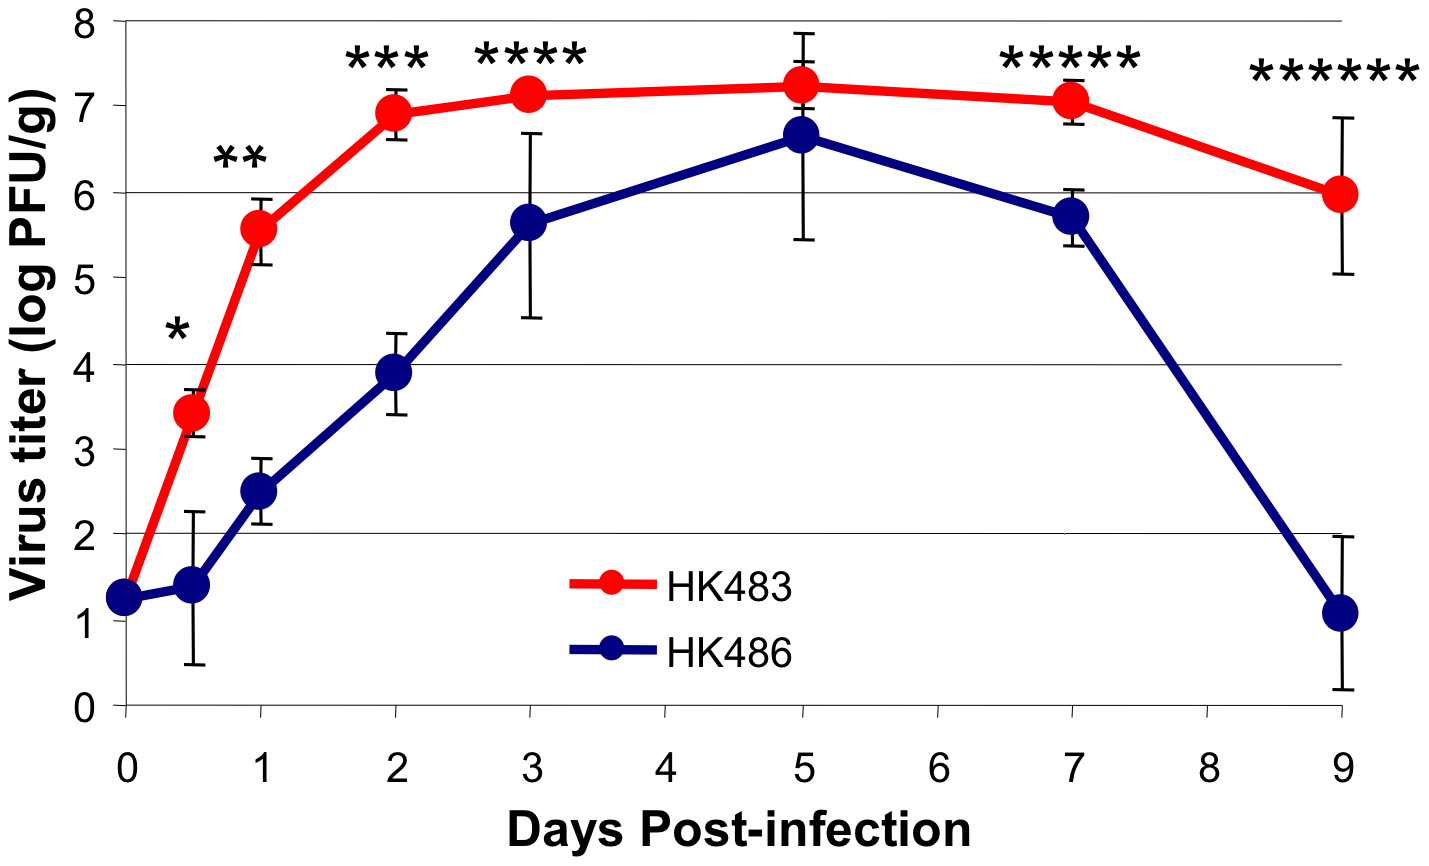 Virus replication kinetics in lungs of mice infected with H5N1 viruses HK483 or HK486.